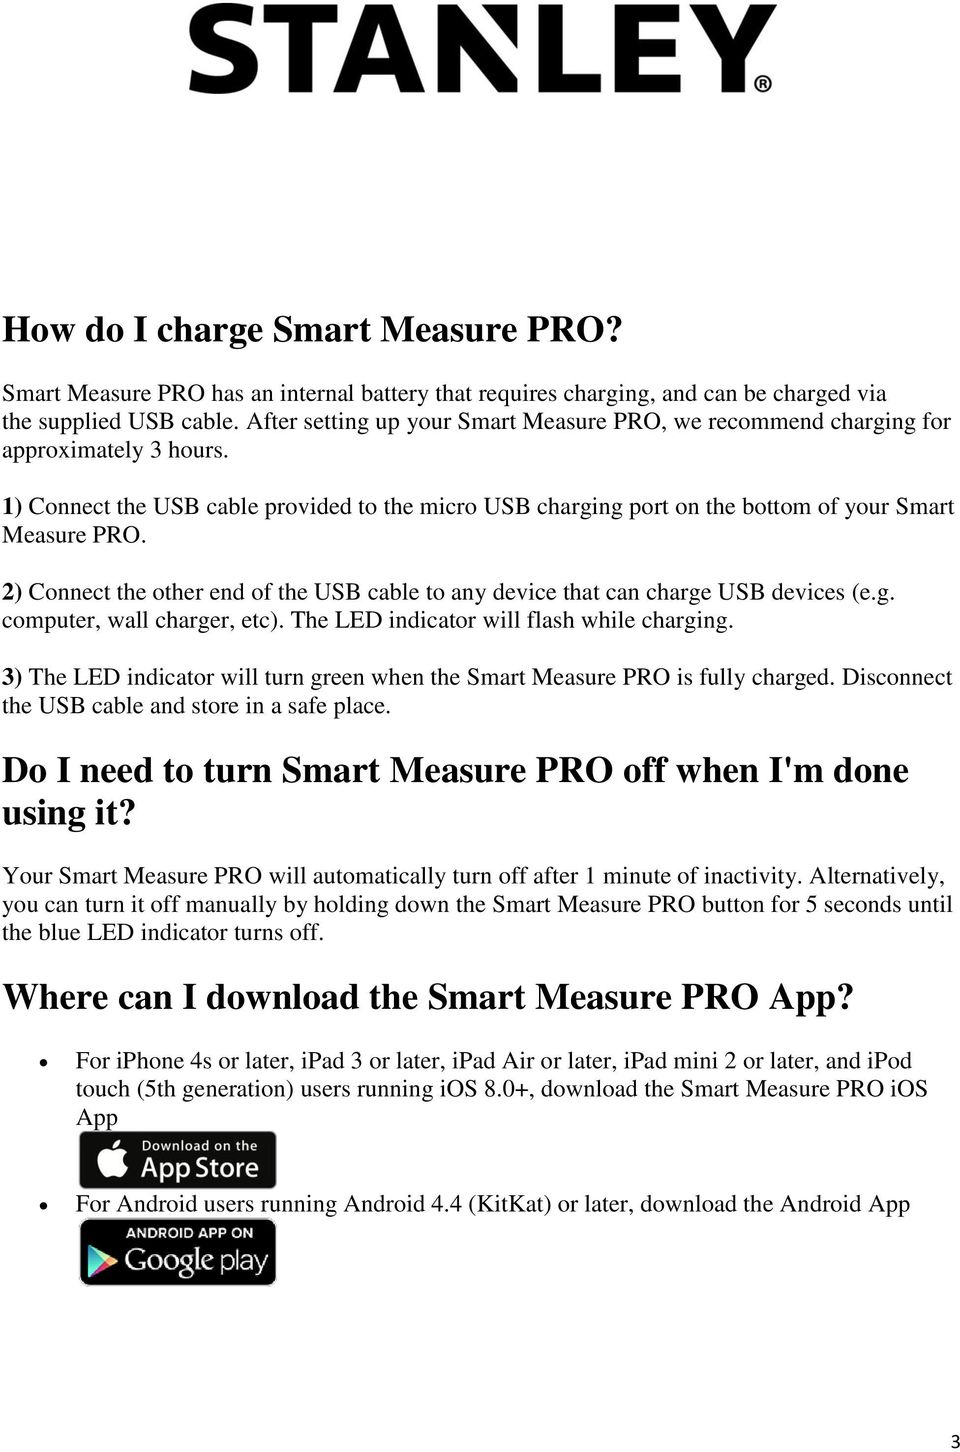 What Smartphones and Tablets are supported by Smart Measure